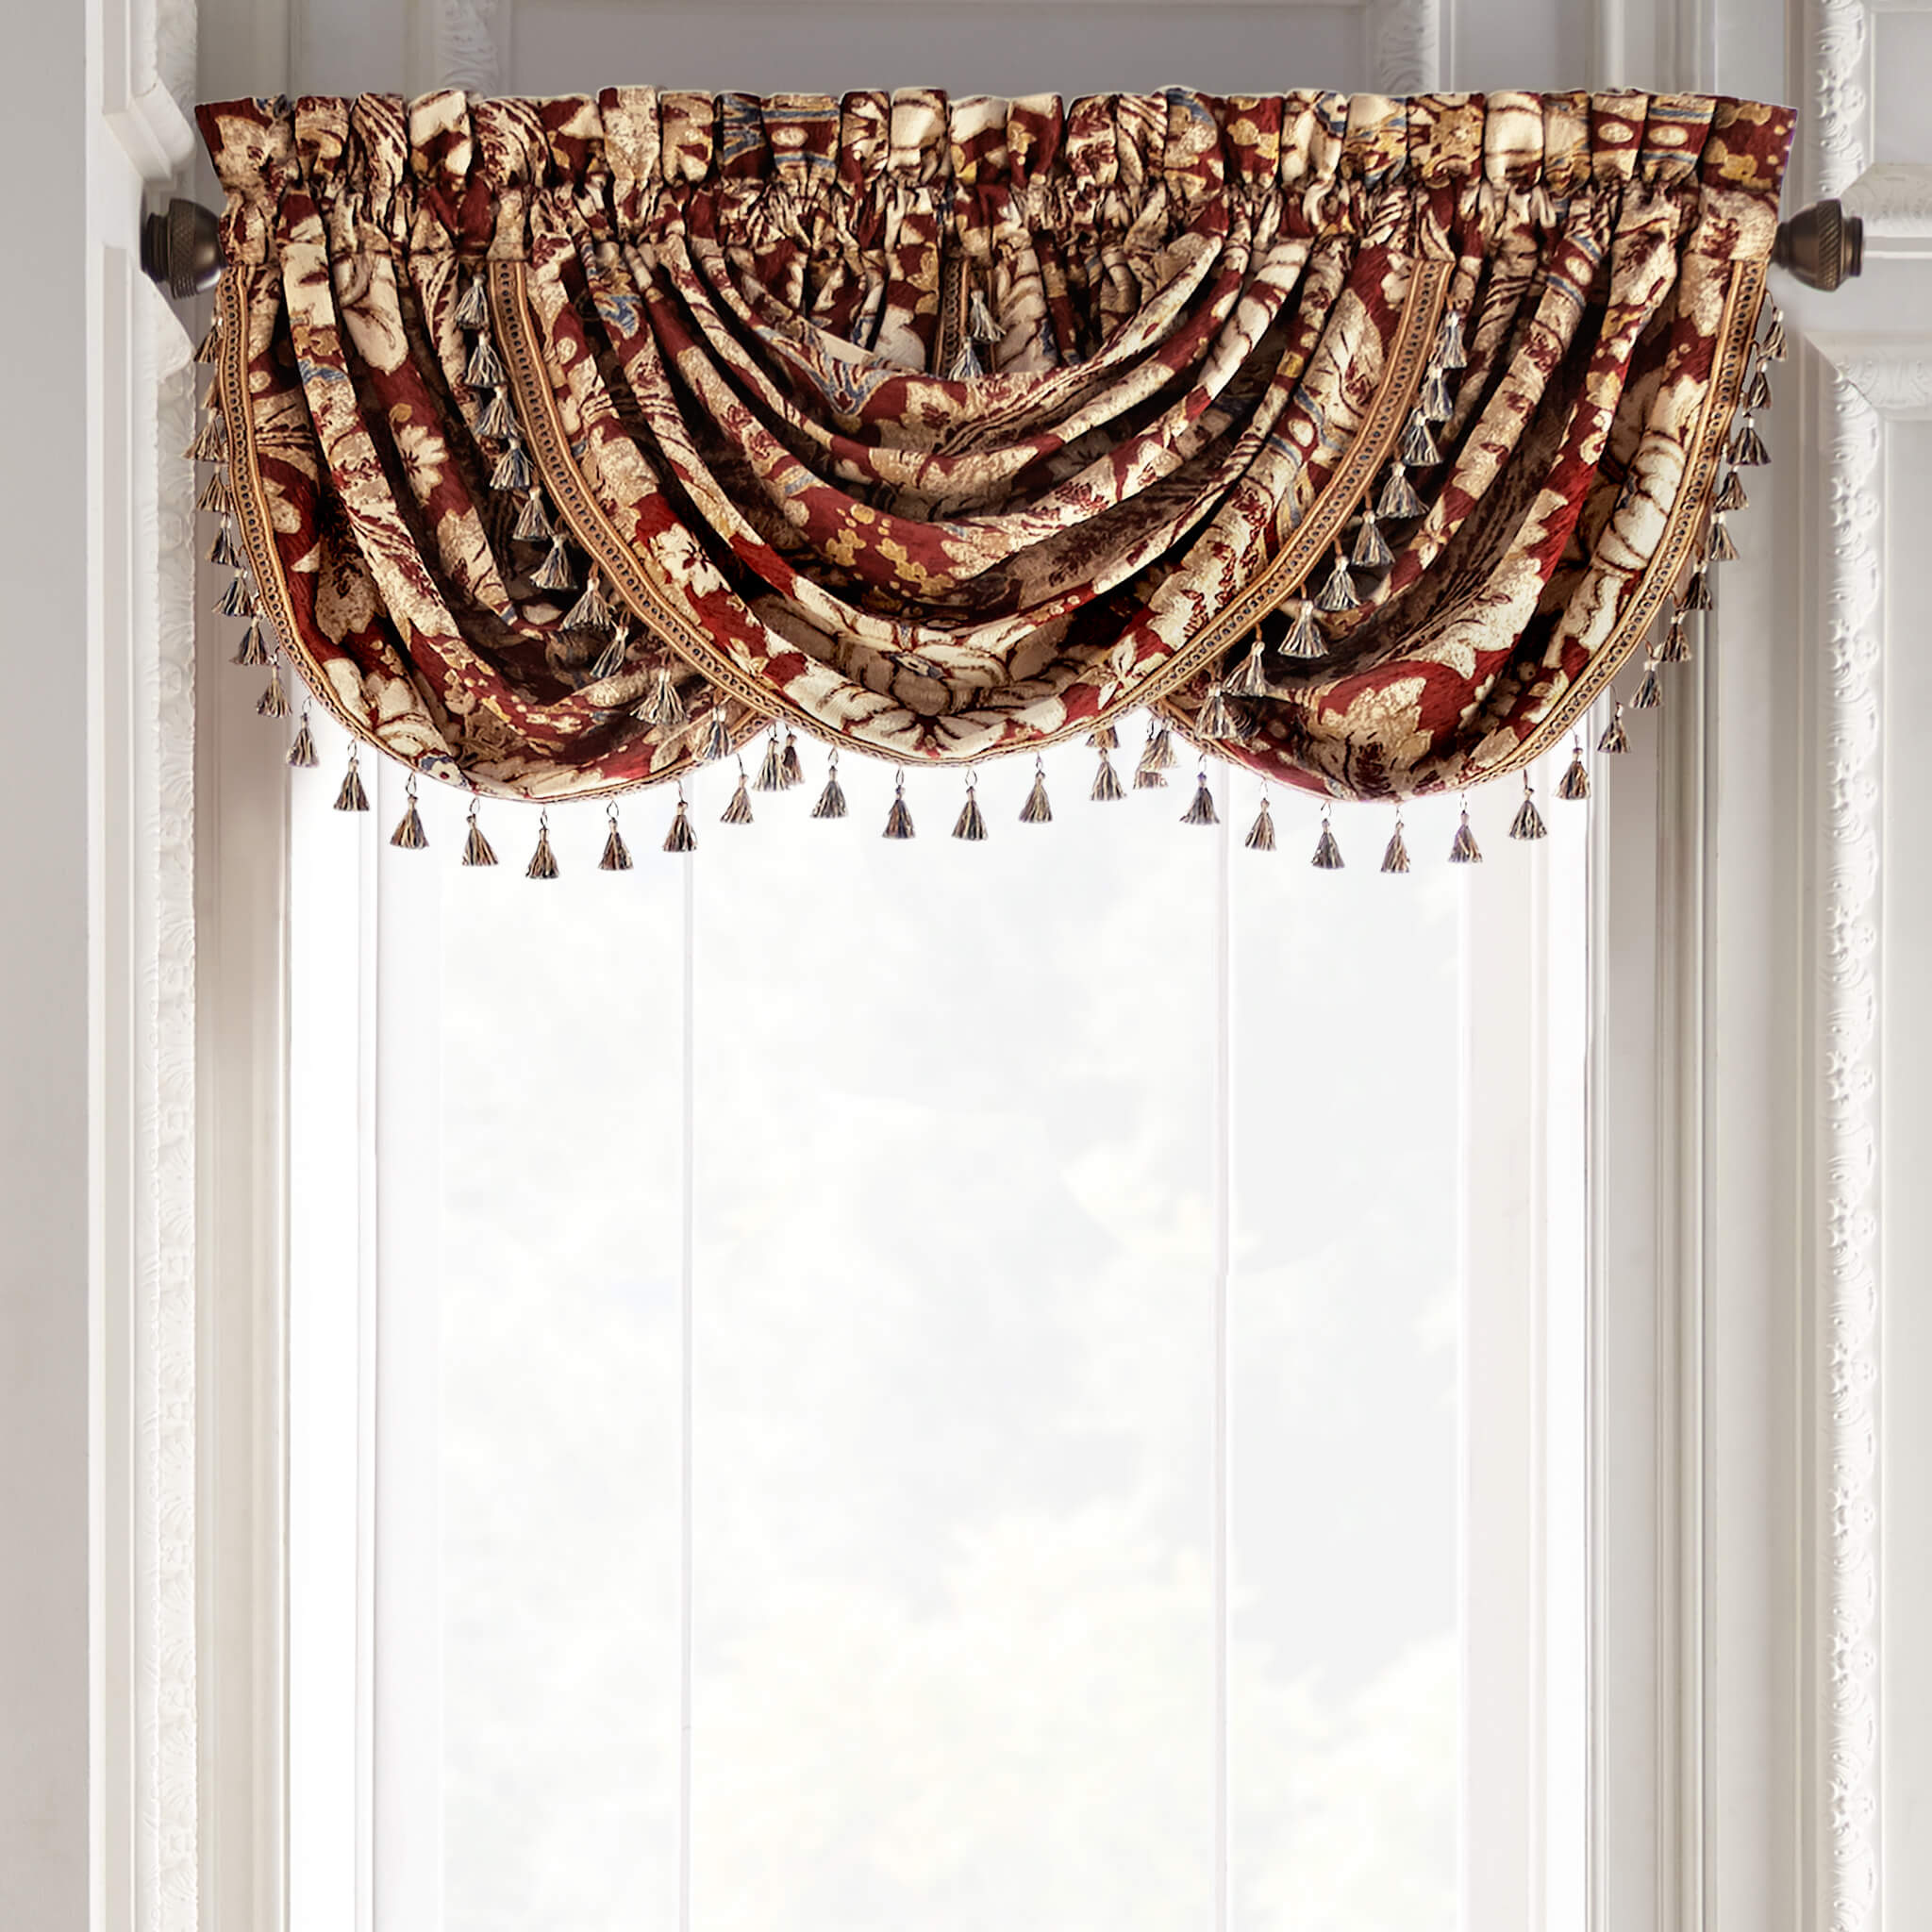 Arden Waterfall Swag Valance